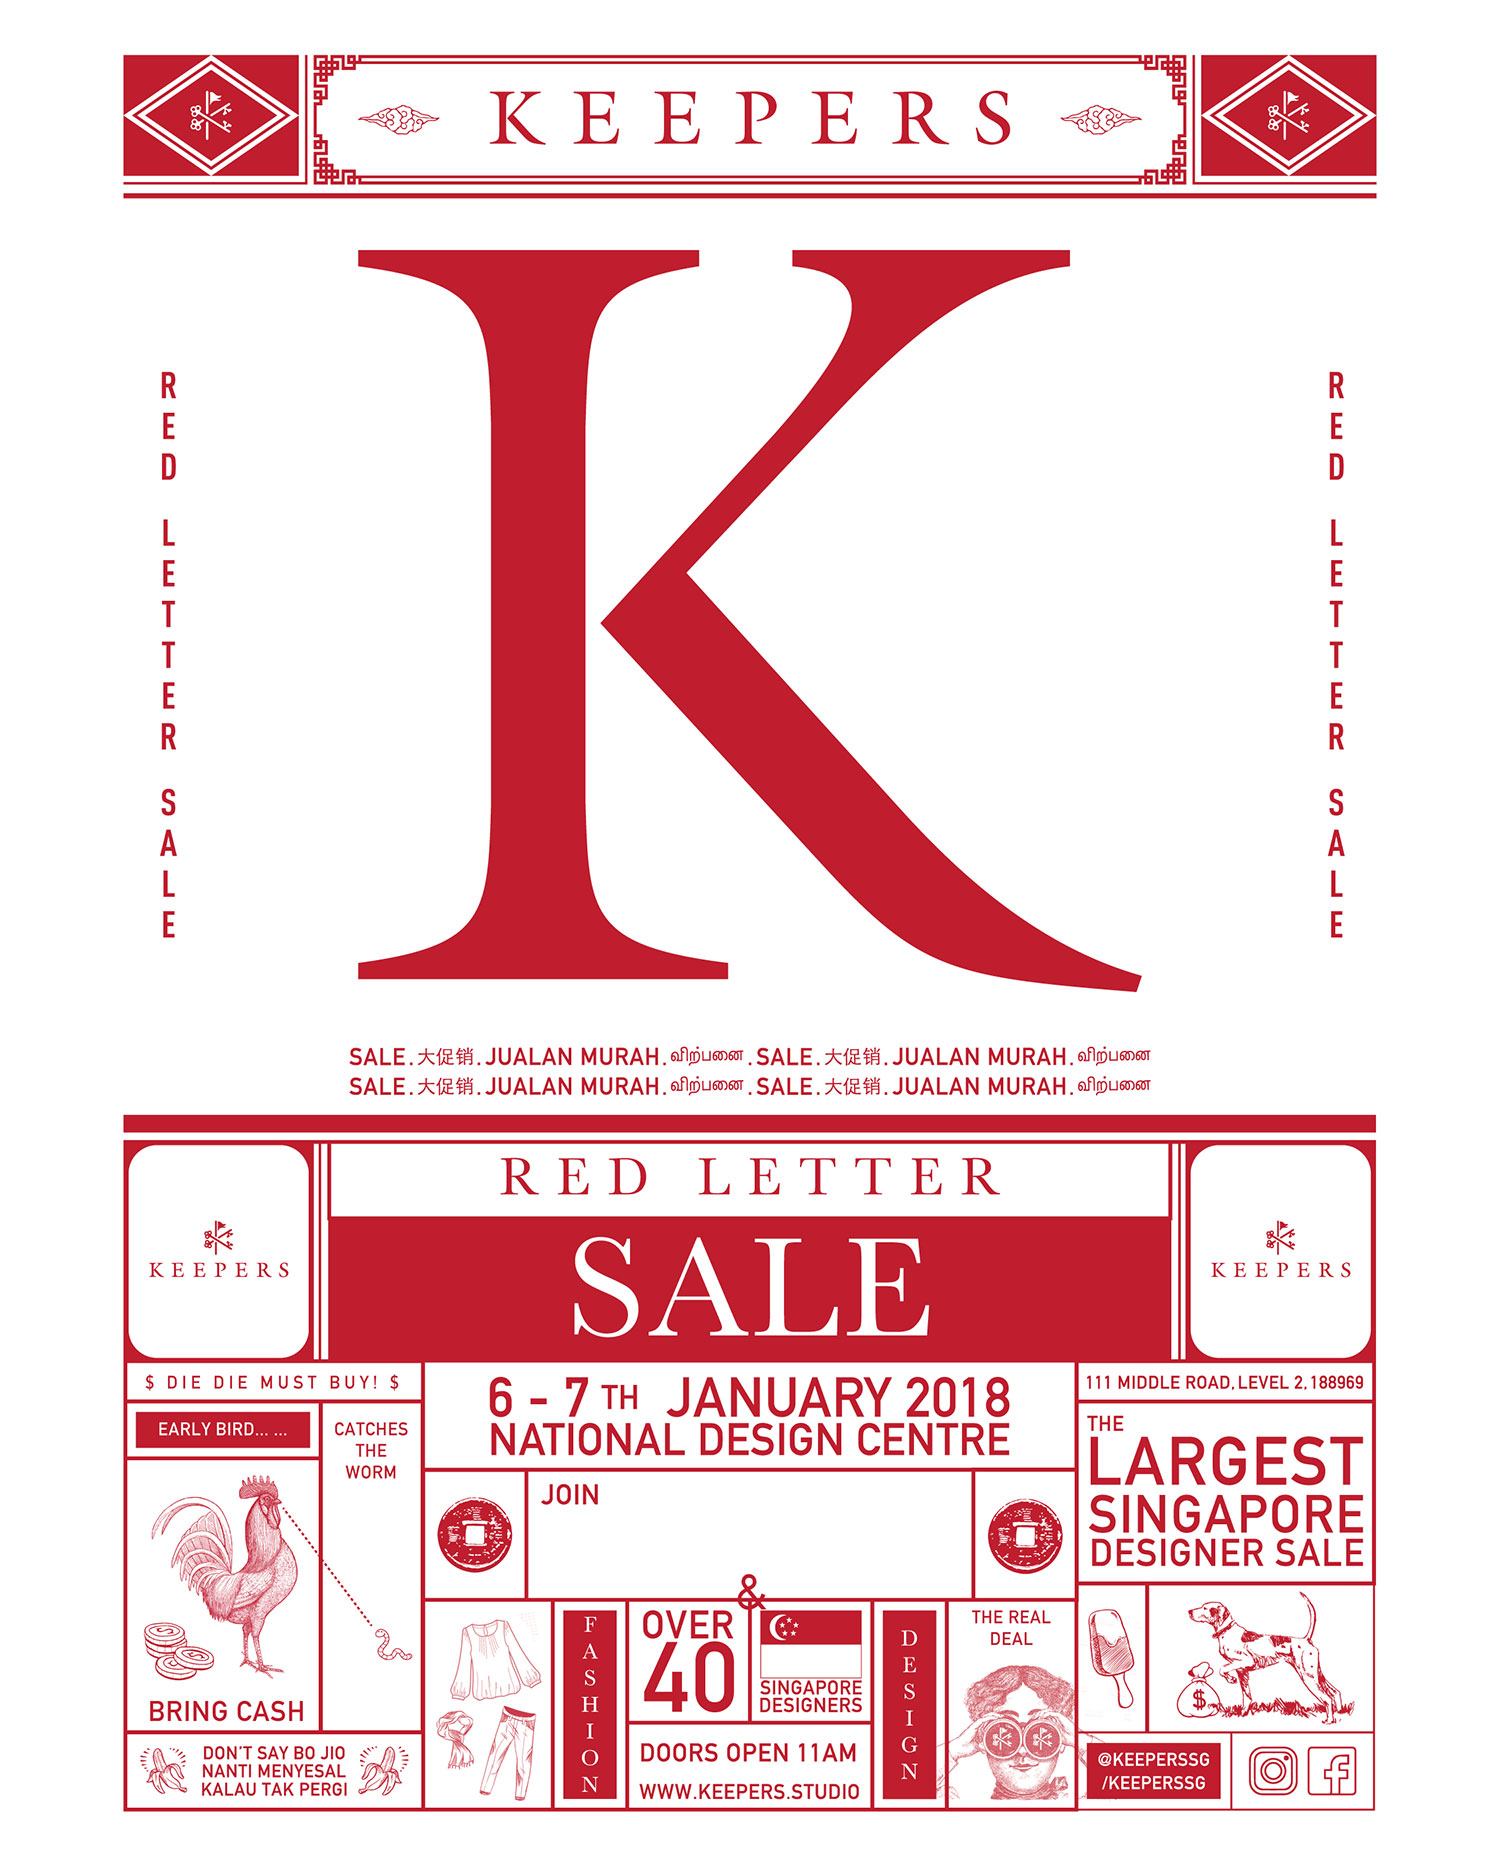 The KEEPERS Red Letter Sale